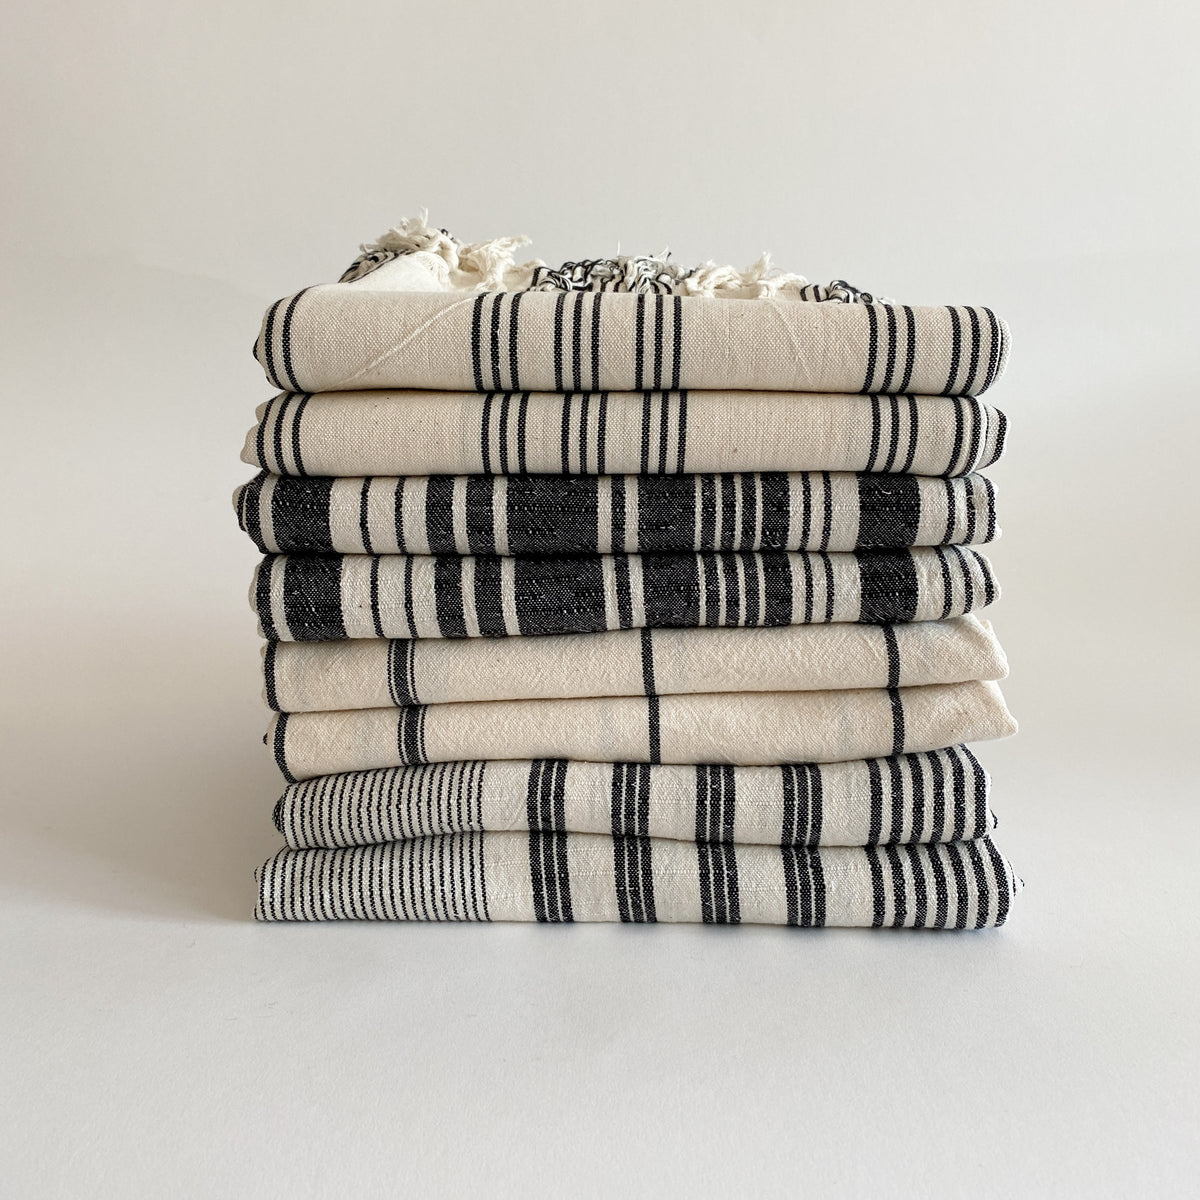 The Ultimate Peshtemal No.101 Turkish Towel